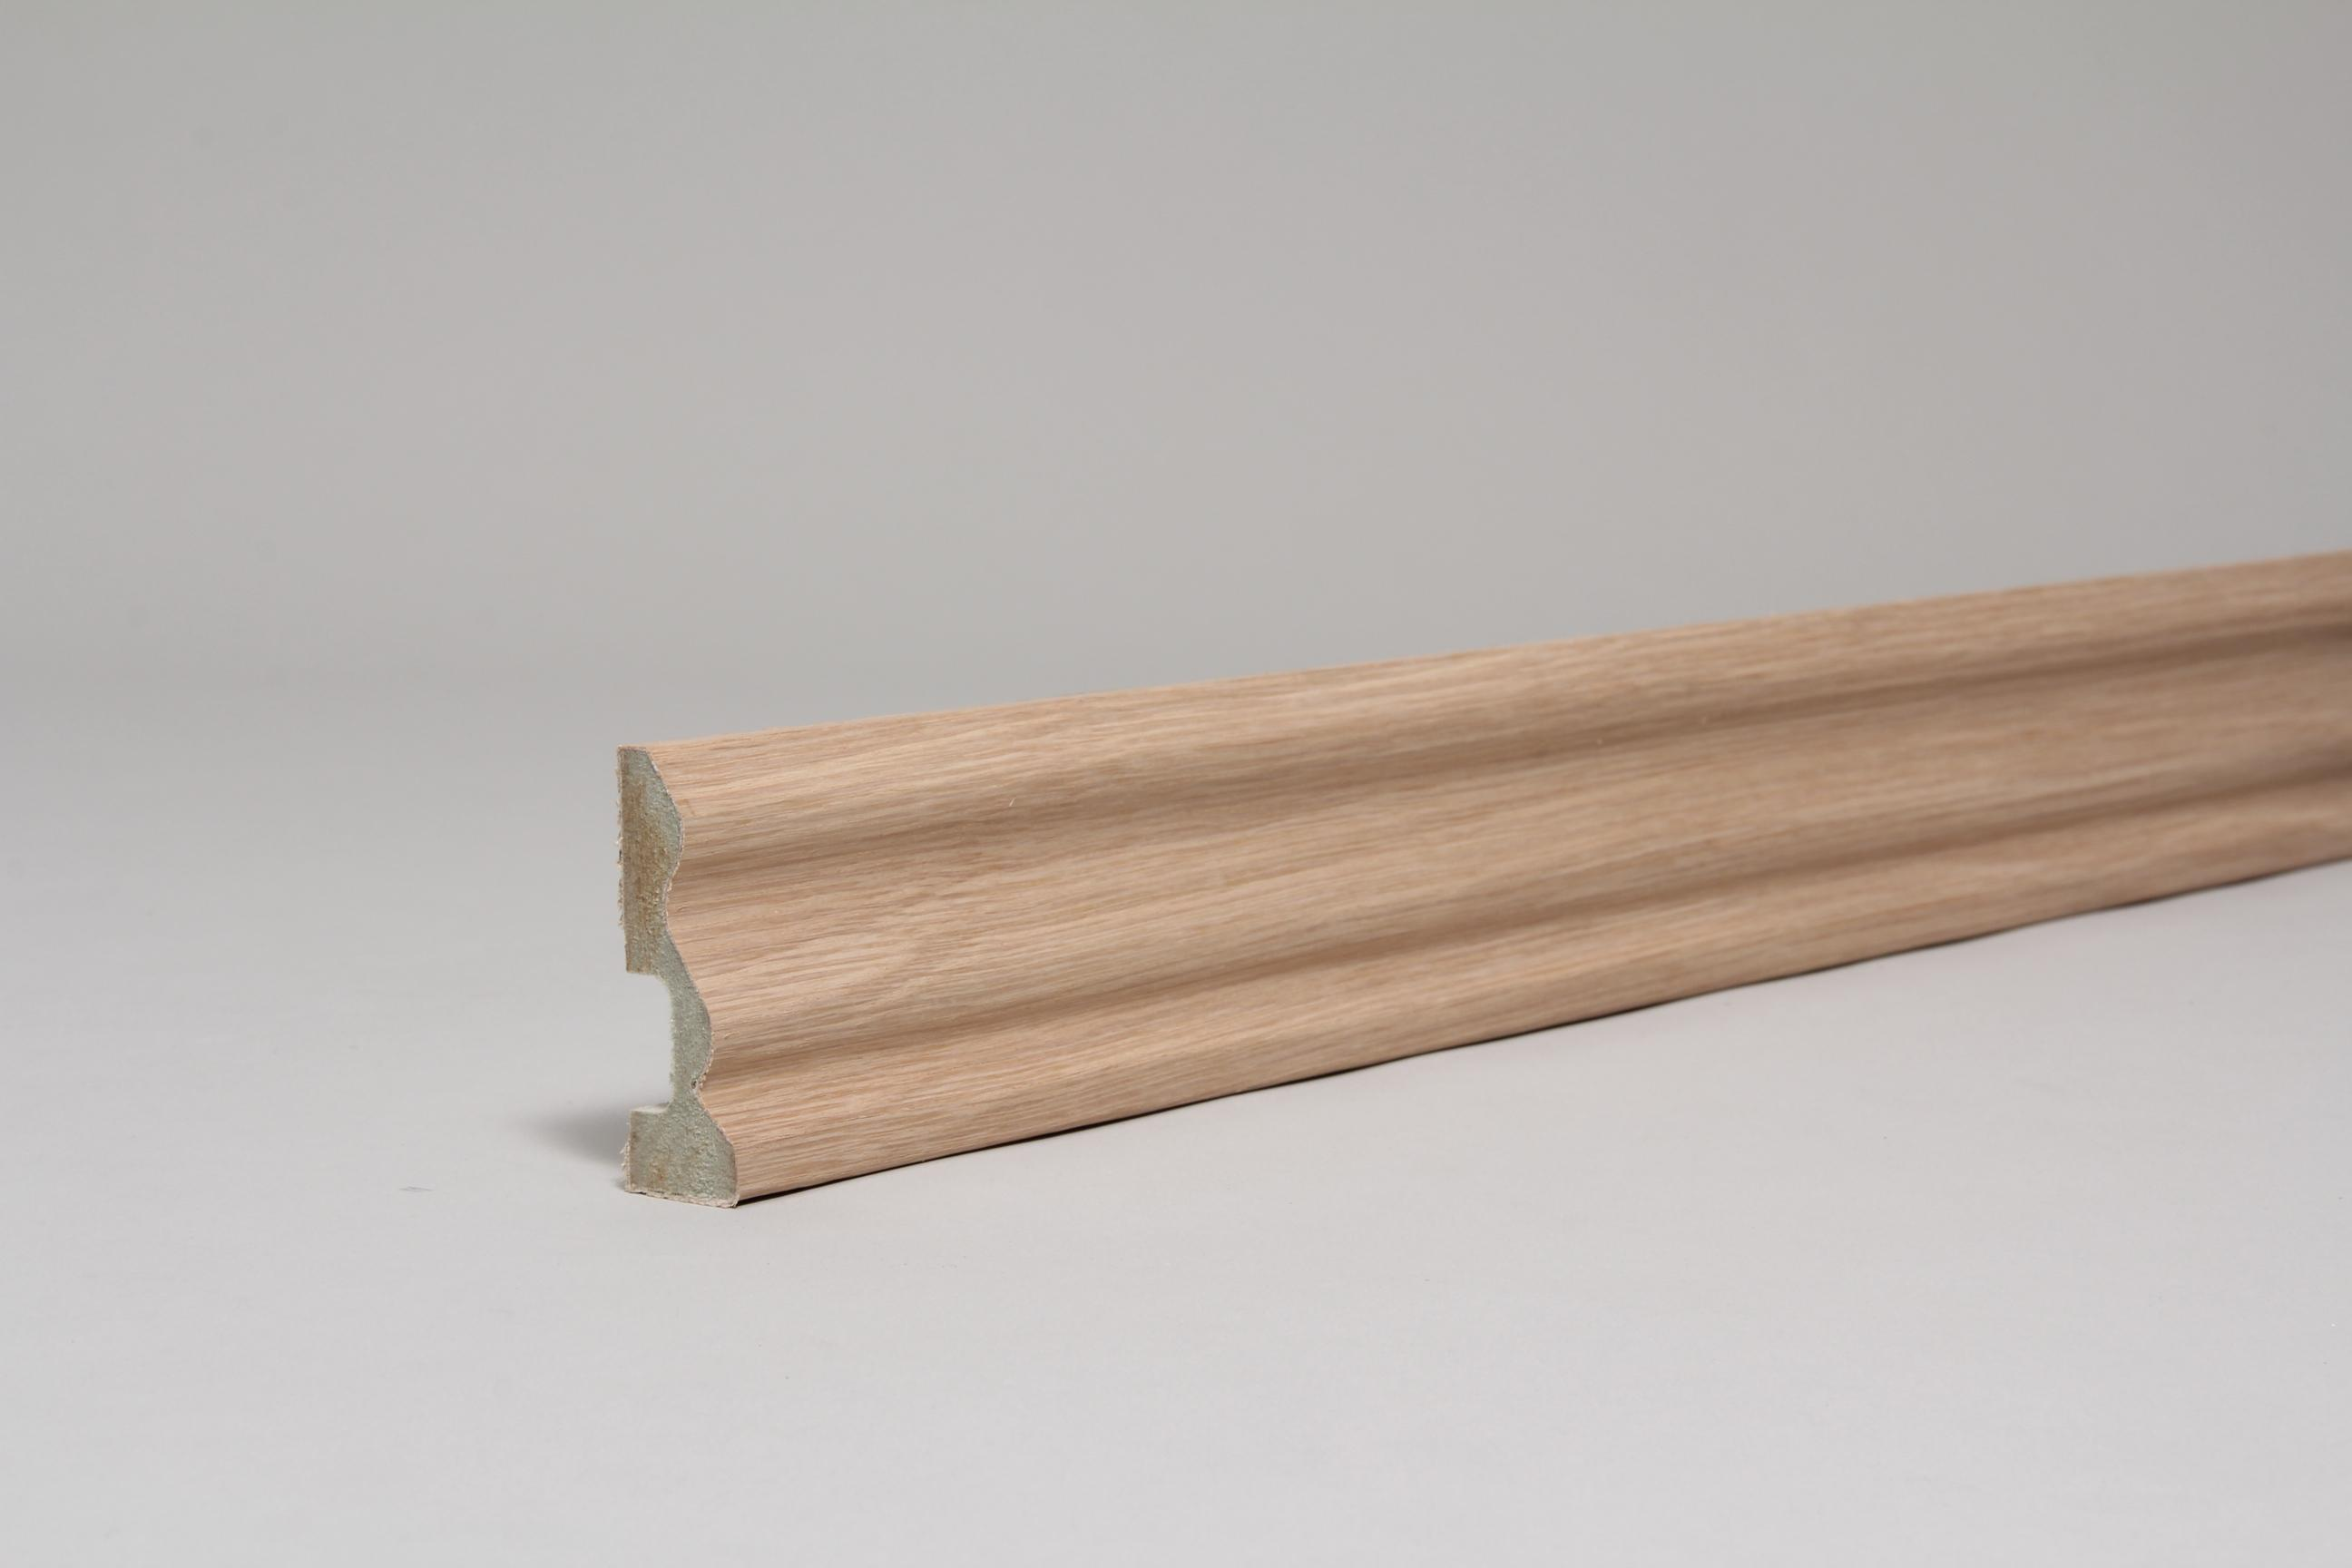 Ogee 18mm x 57mm x 4.4 Mtr Veneered  American White Oak